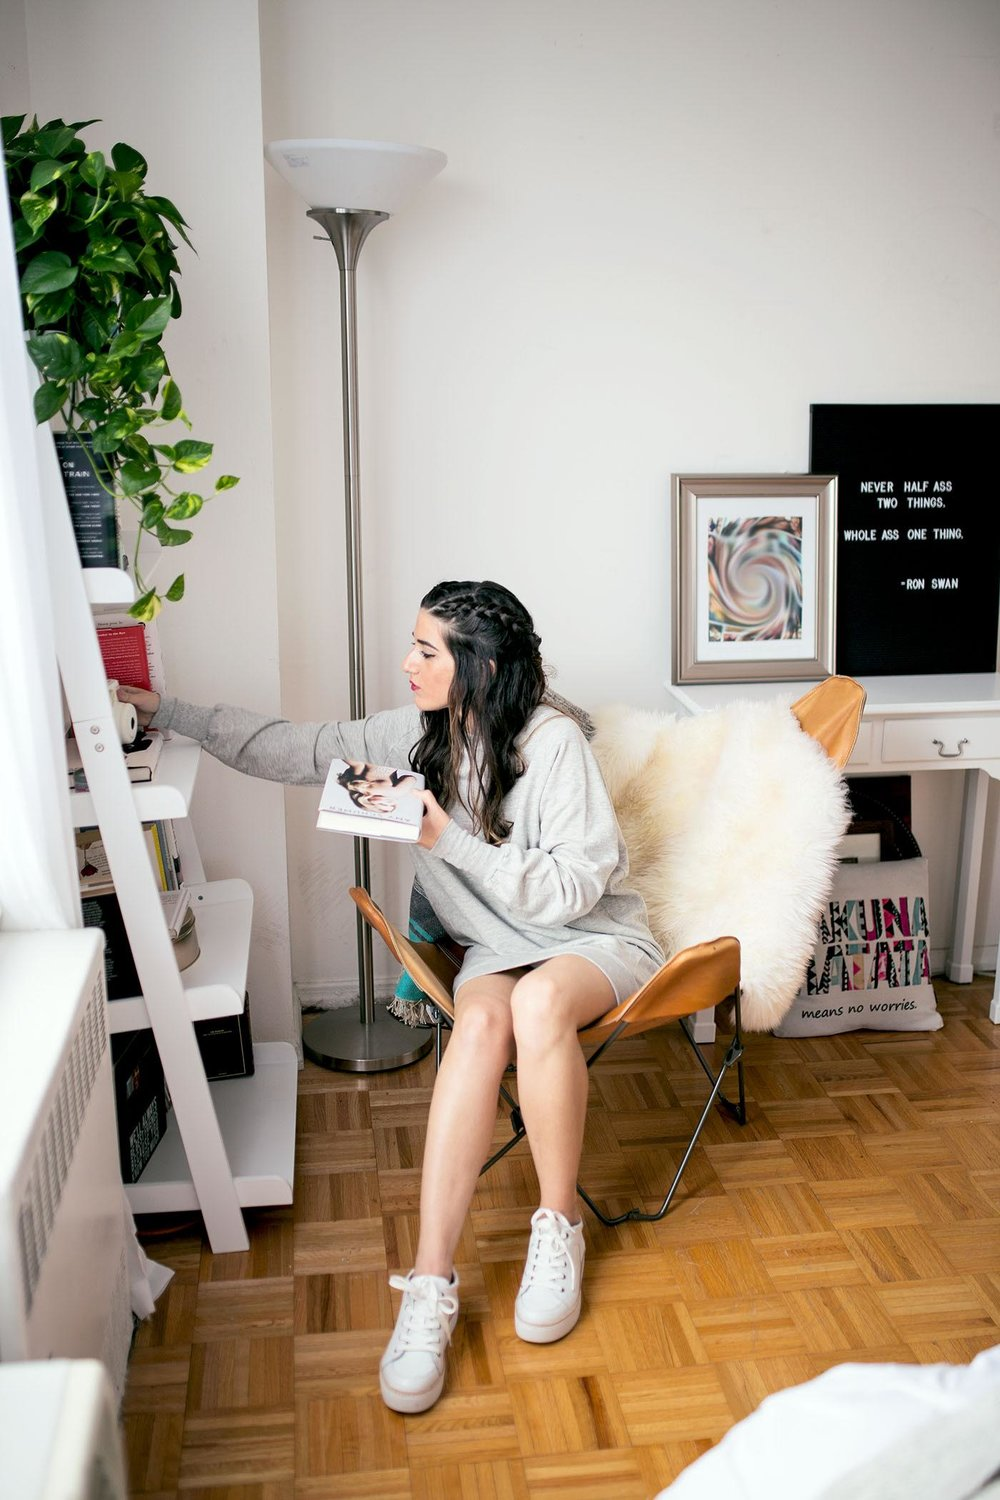 Sweatshirt Dress White Sneakers Louboutins & Love Fashion Blog Esther Santer NYC Street Style Blogger Outfit OOTD Trendy Grey Comftorable Cozy Sweater M4D3 Shoes Pretty Lounging New York City Zara Butterfly Chair Urban Outfitters Hair RPZL Braid Girl.jpg